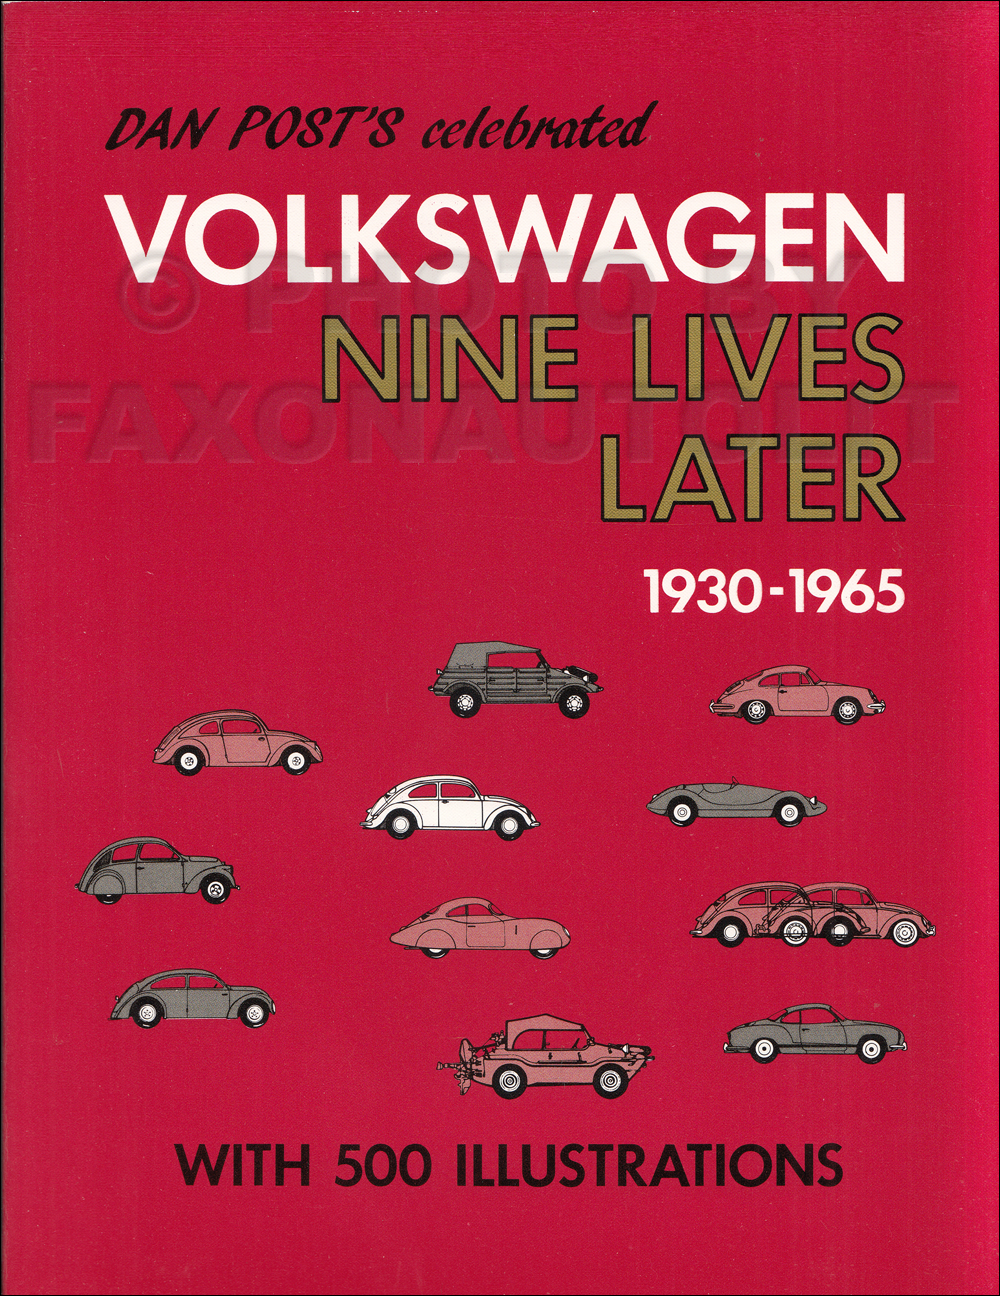 Volkswagen 9 Lives Later: 1930-1965 500 VW Pictures